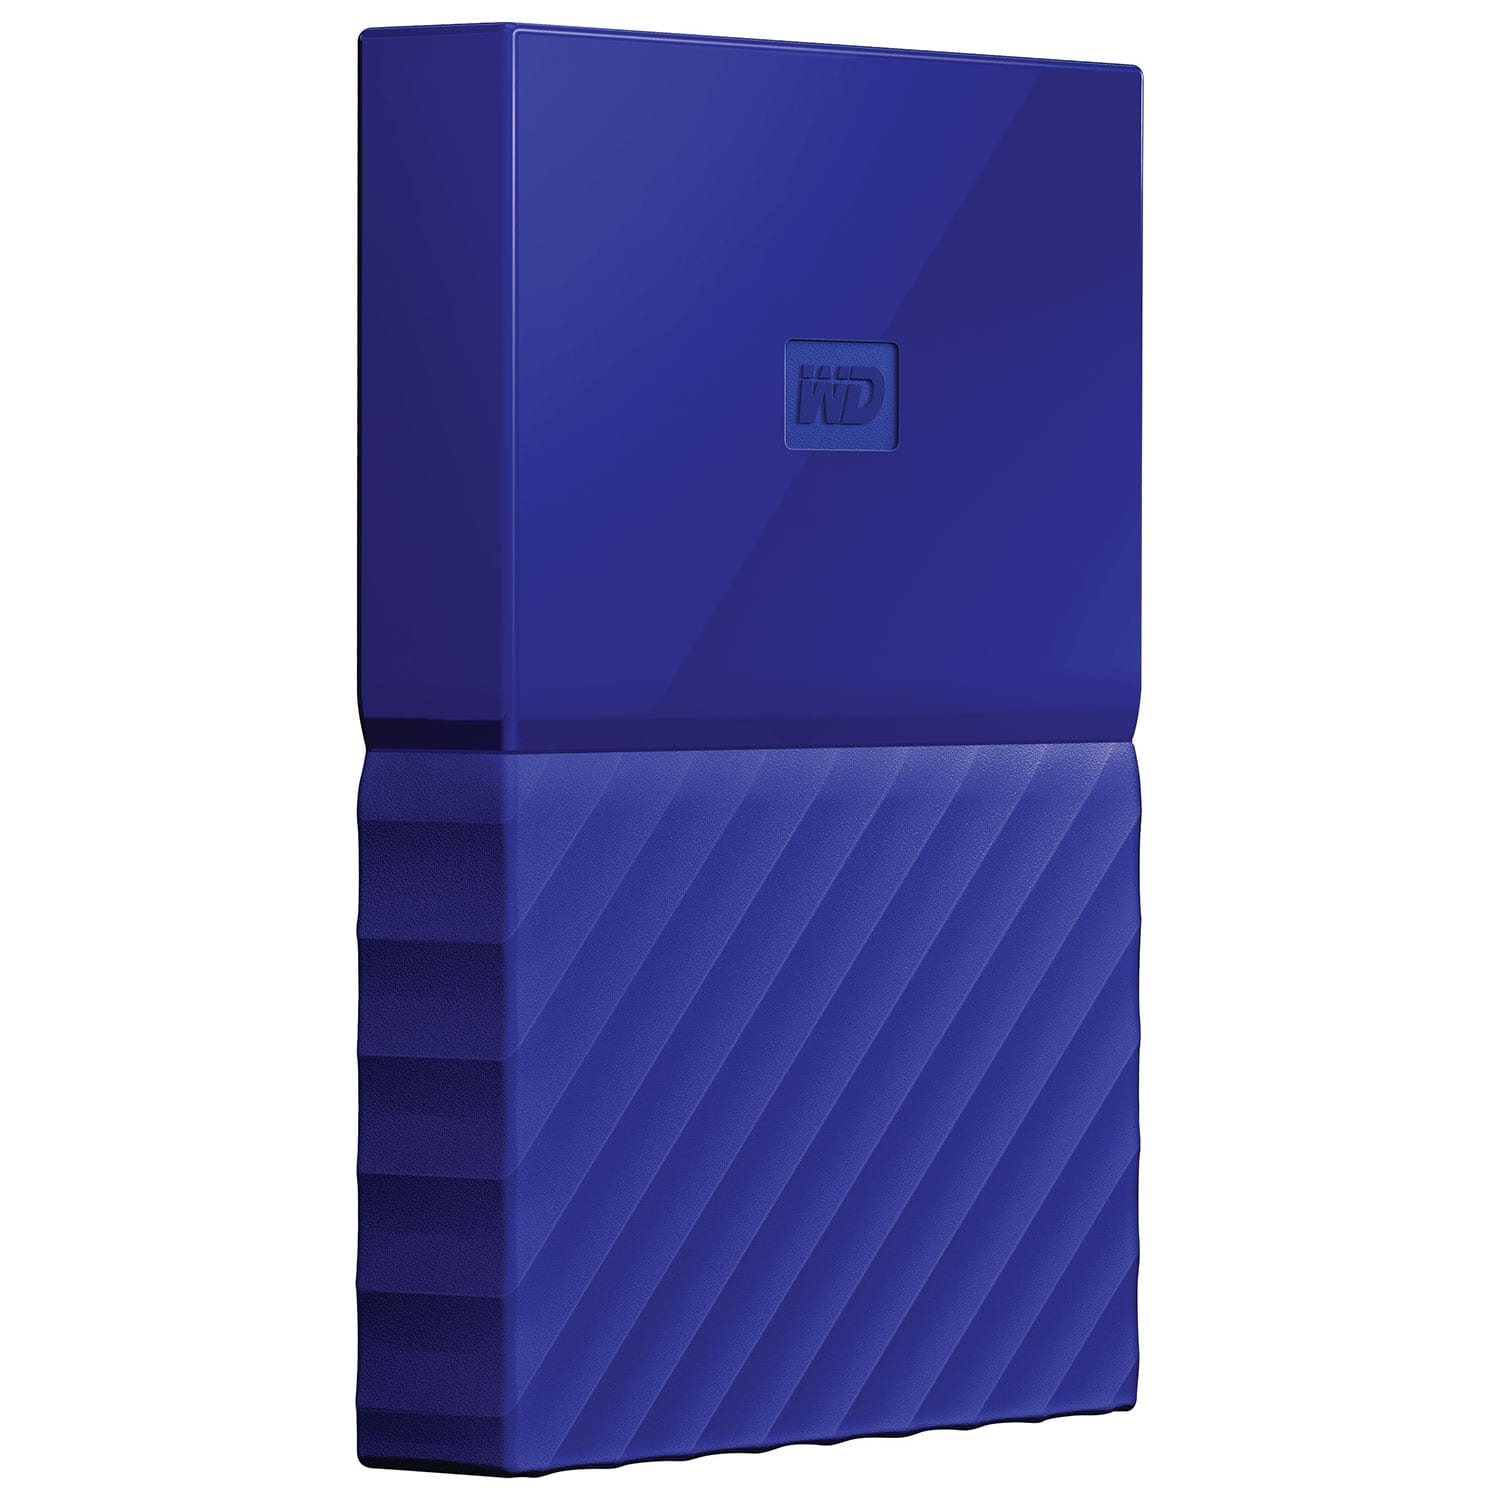 WD My Passport USB 3.0 Portable Hard Drive 2TB at $40 (depending on your tax rate) w/Amex offers